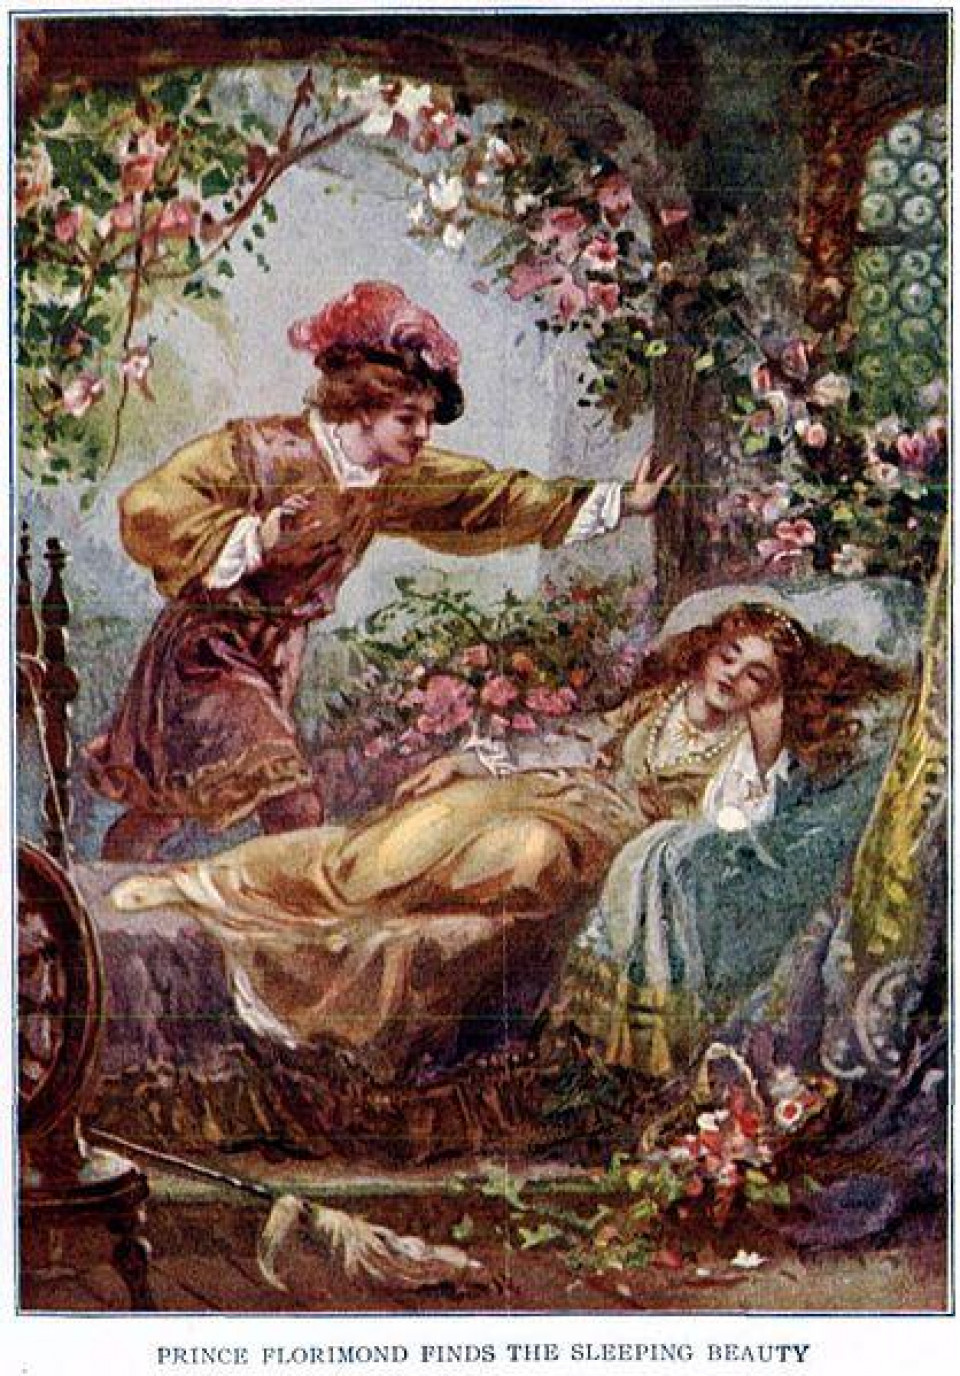 418Px Prince Florimund Finds The Sleeping Beauty   Project Gutenberg Etext 19993